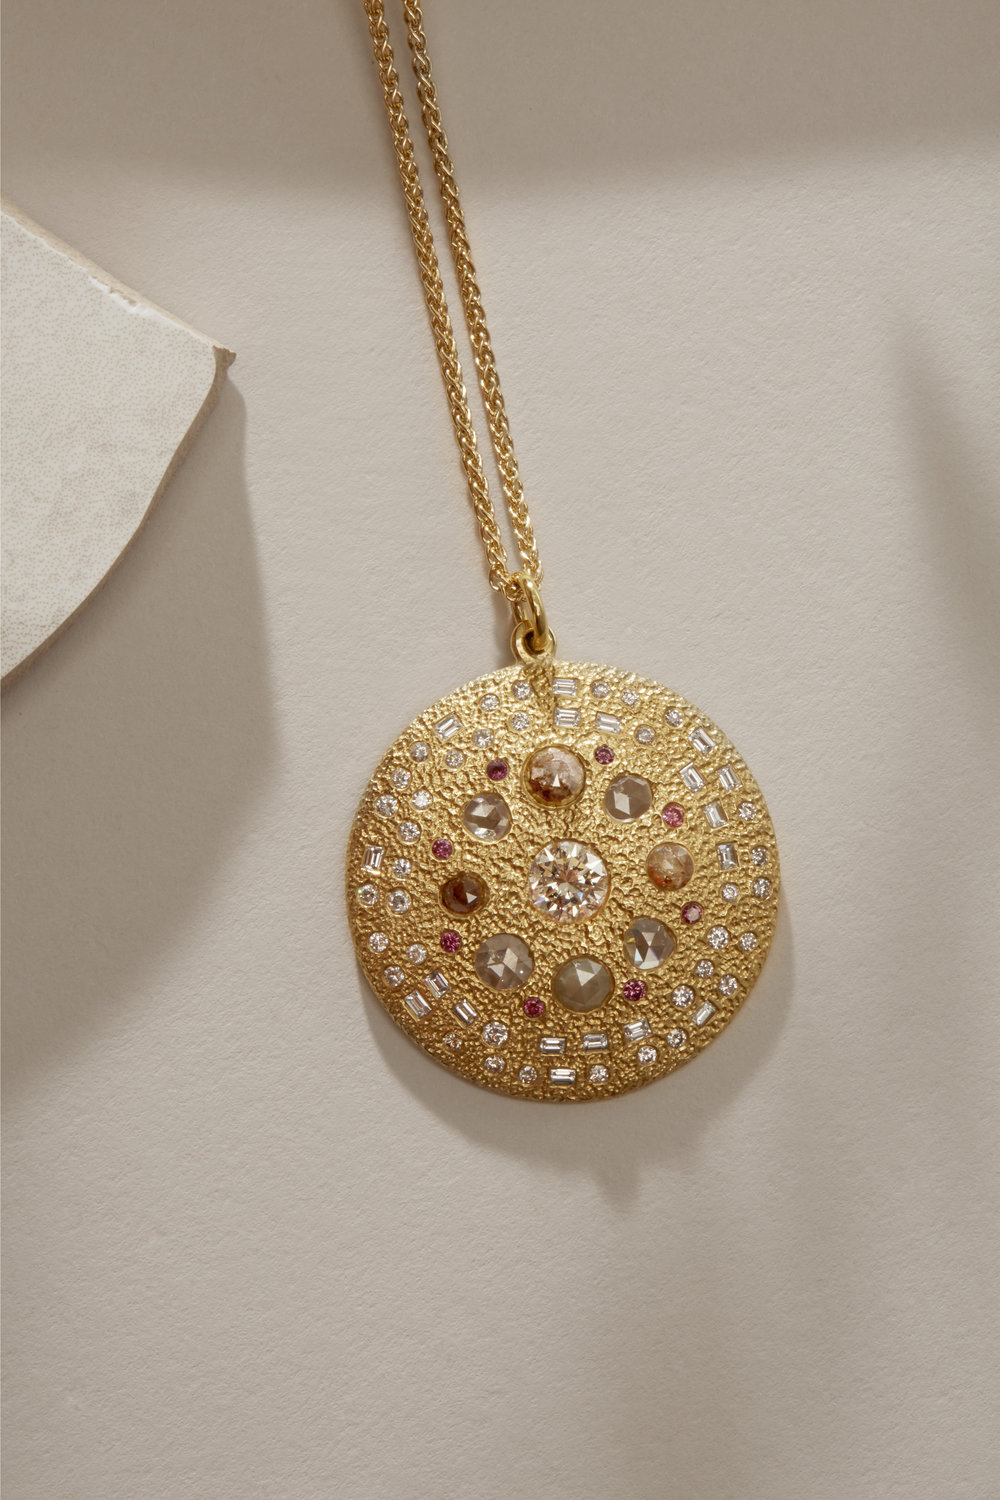 A bespoke pendant using Morse Code round and baguette diamonds to hide the family's names from £10,000